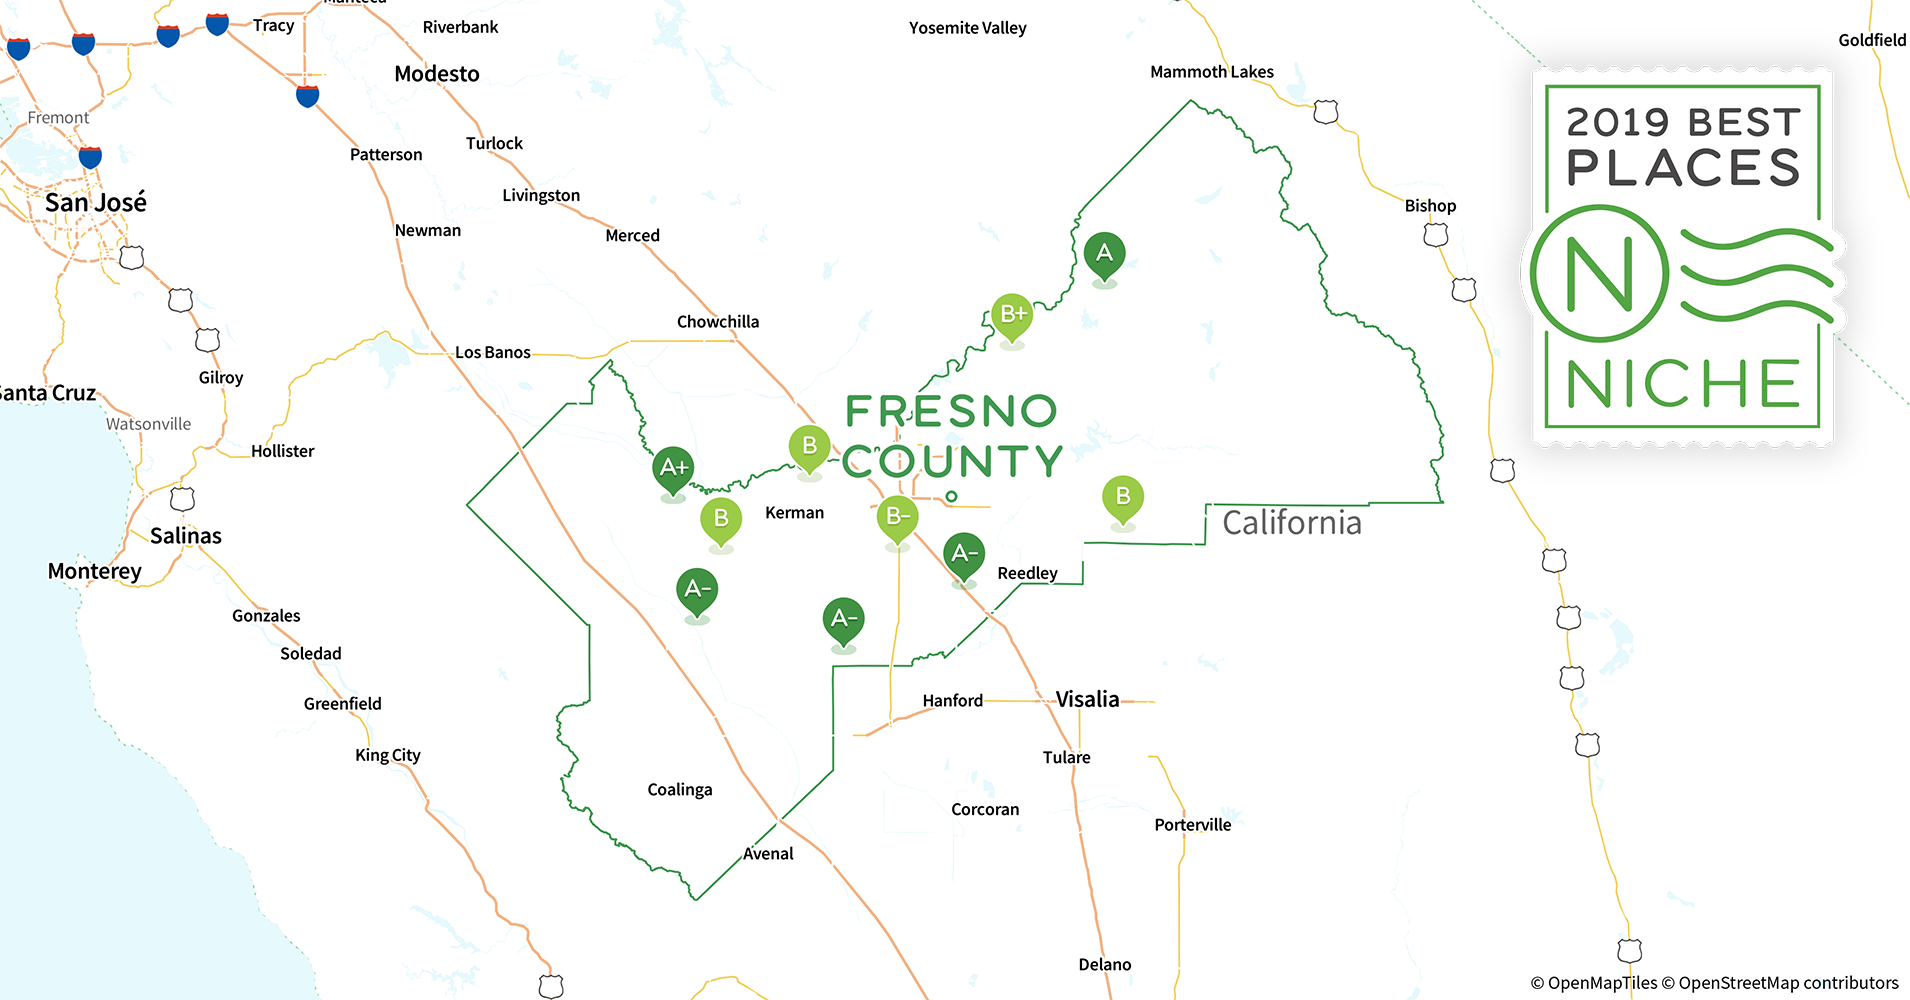 Clovis Ca Zip Code Map.2019 Best Places To Raise A Family In Fresno County Ca Niche